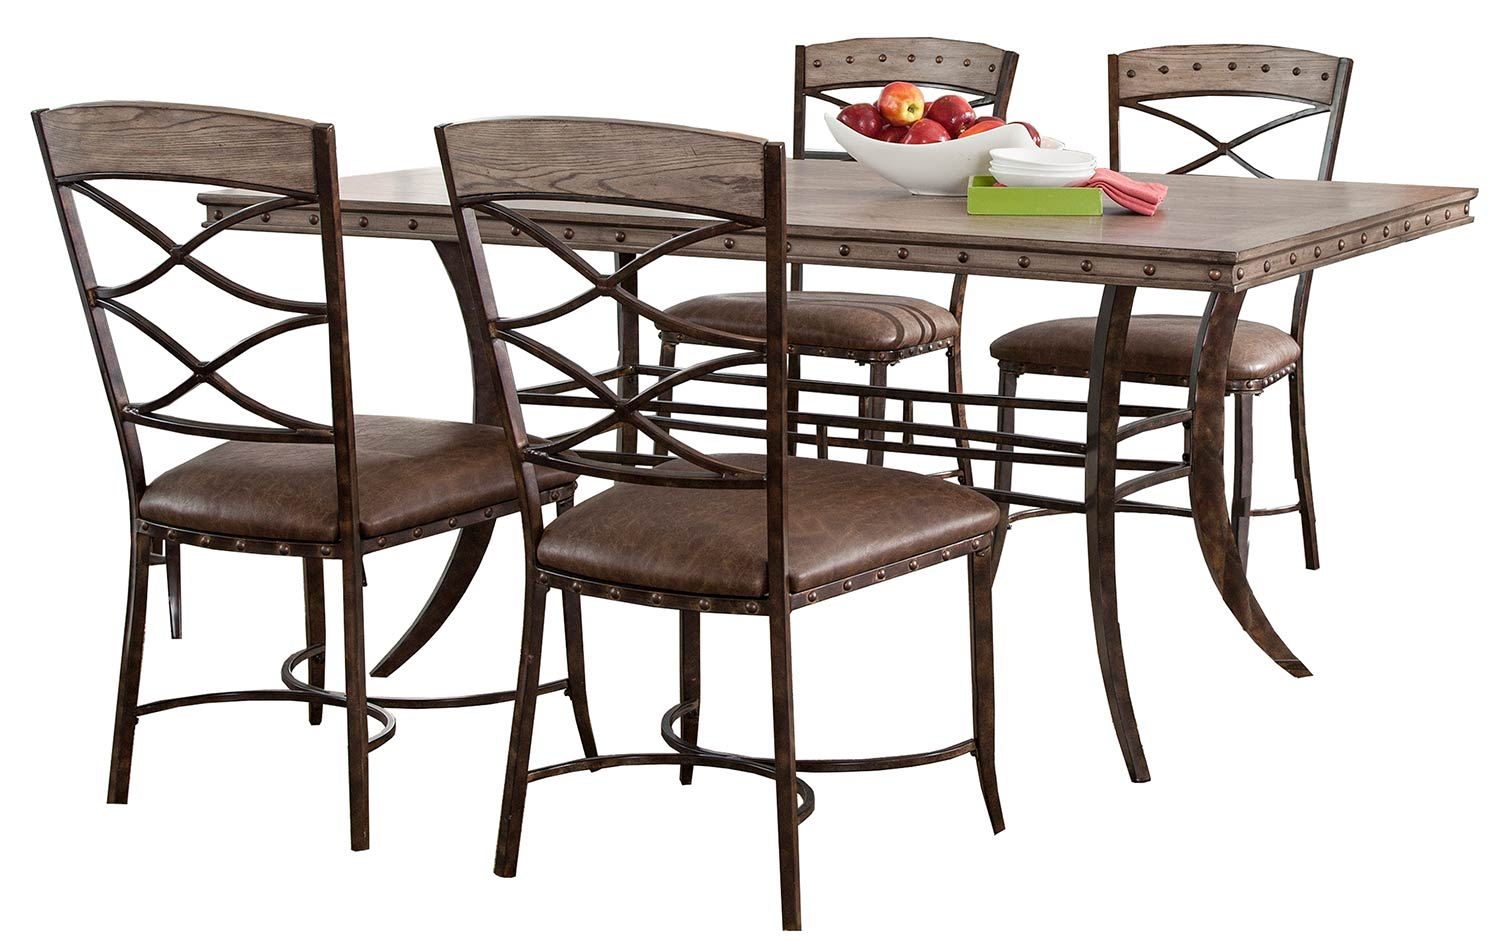 Hillsdale Emmons 5-Piece Rectangle Dining Set - Washed Gray